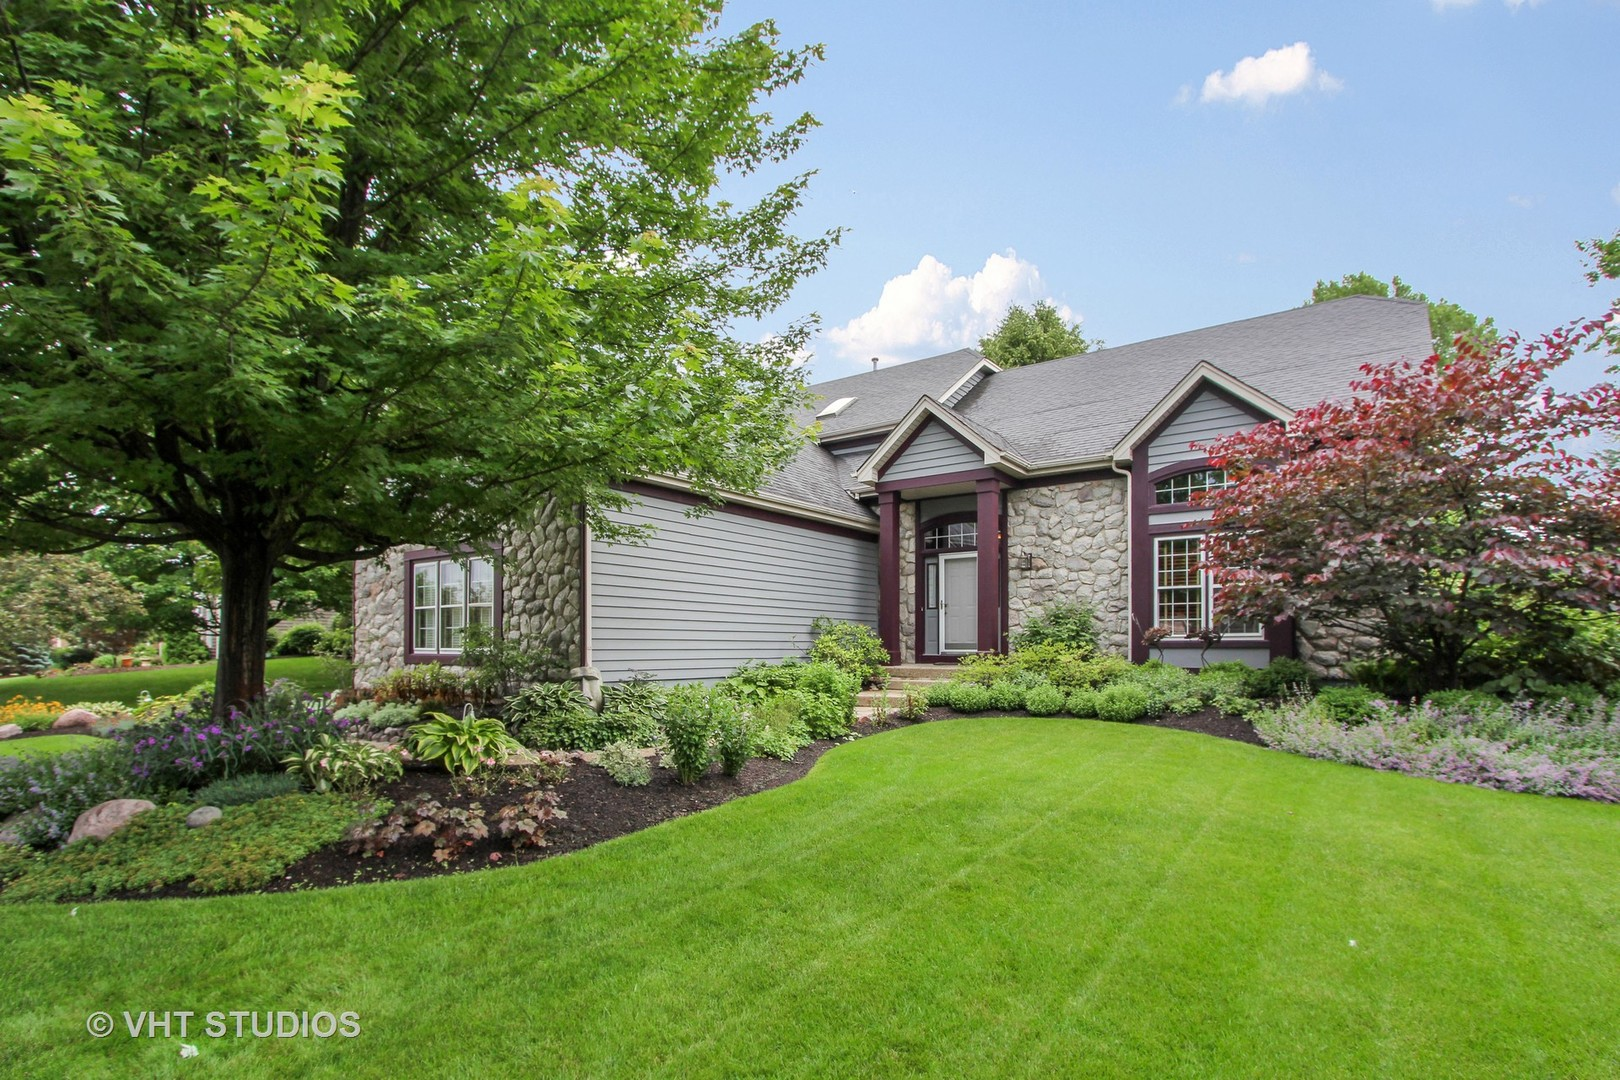 1191 Rodgers Lane, Lake Zurich, Illinois 60047